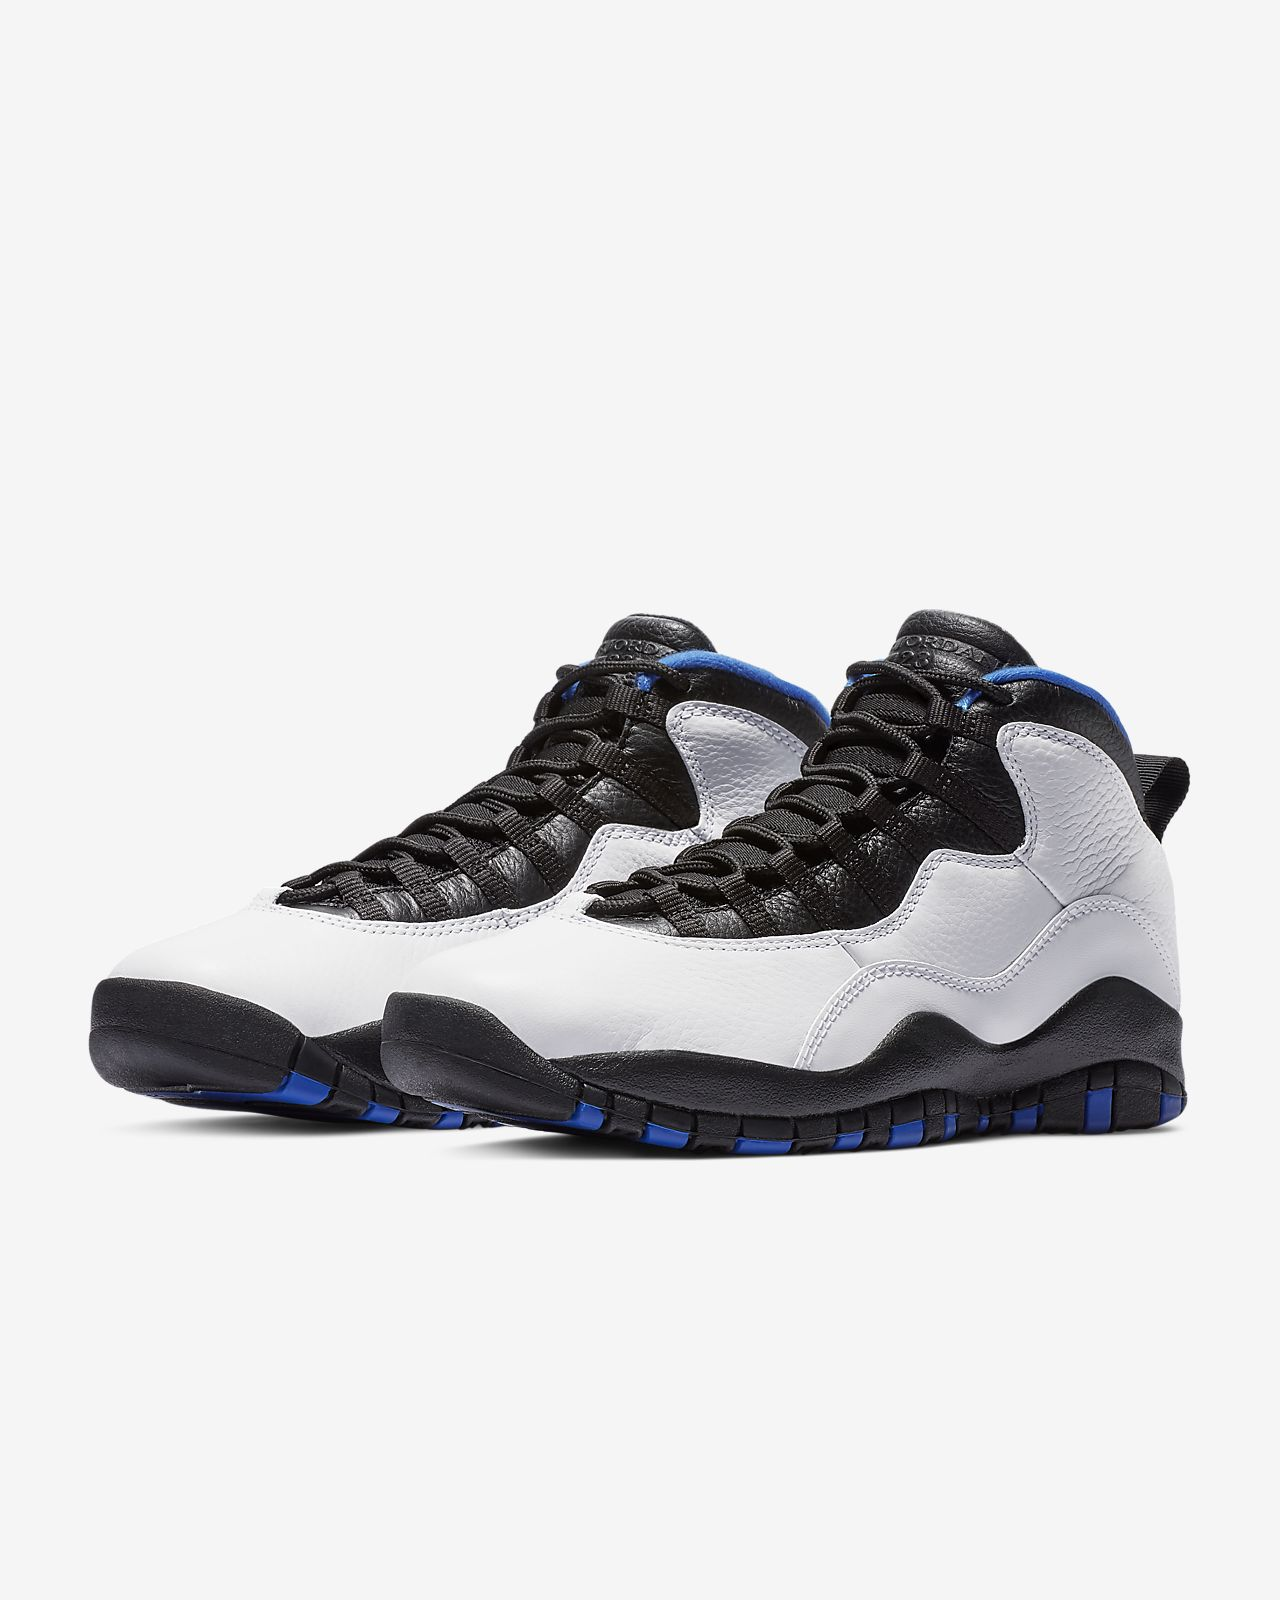 22b47b3c30f183 Air Jordan 10 Retro Men s Shoe. Nike.com AU